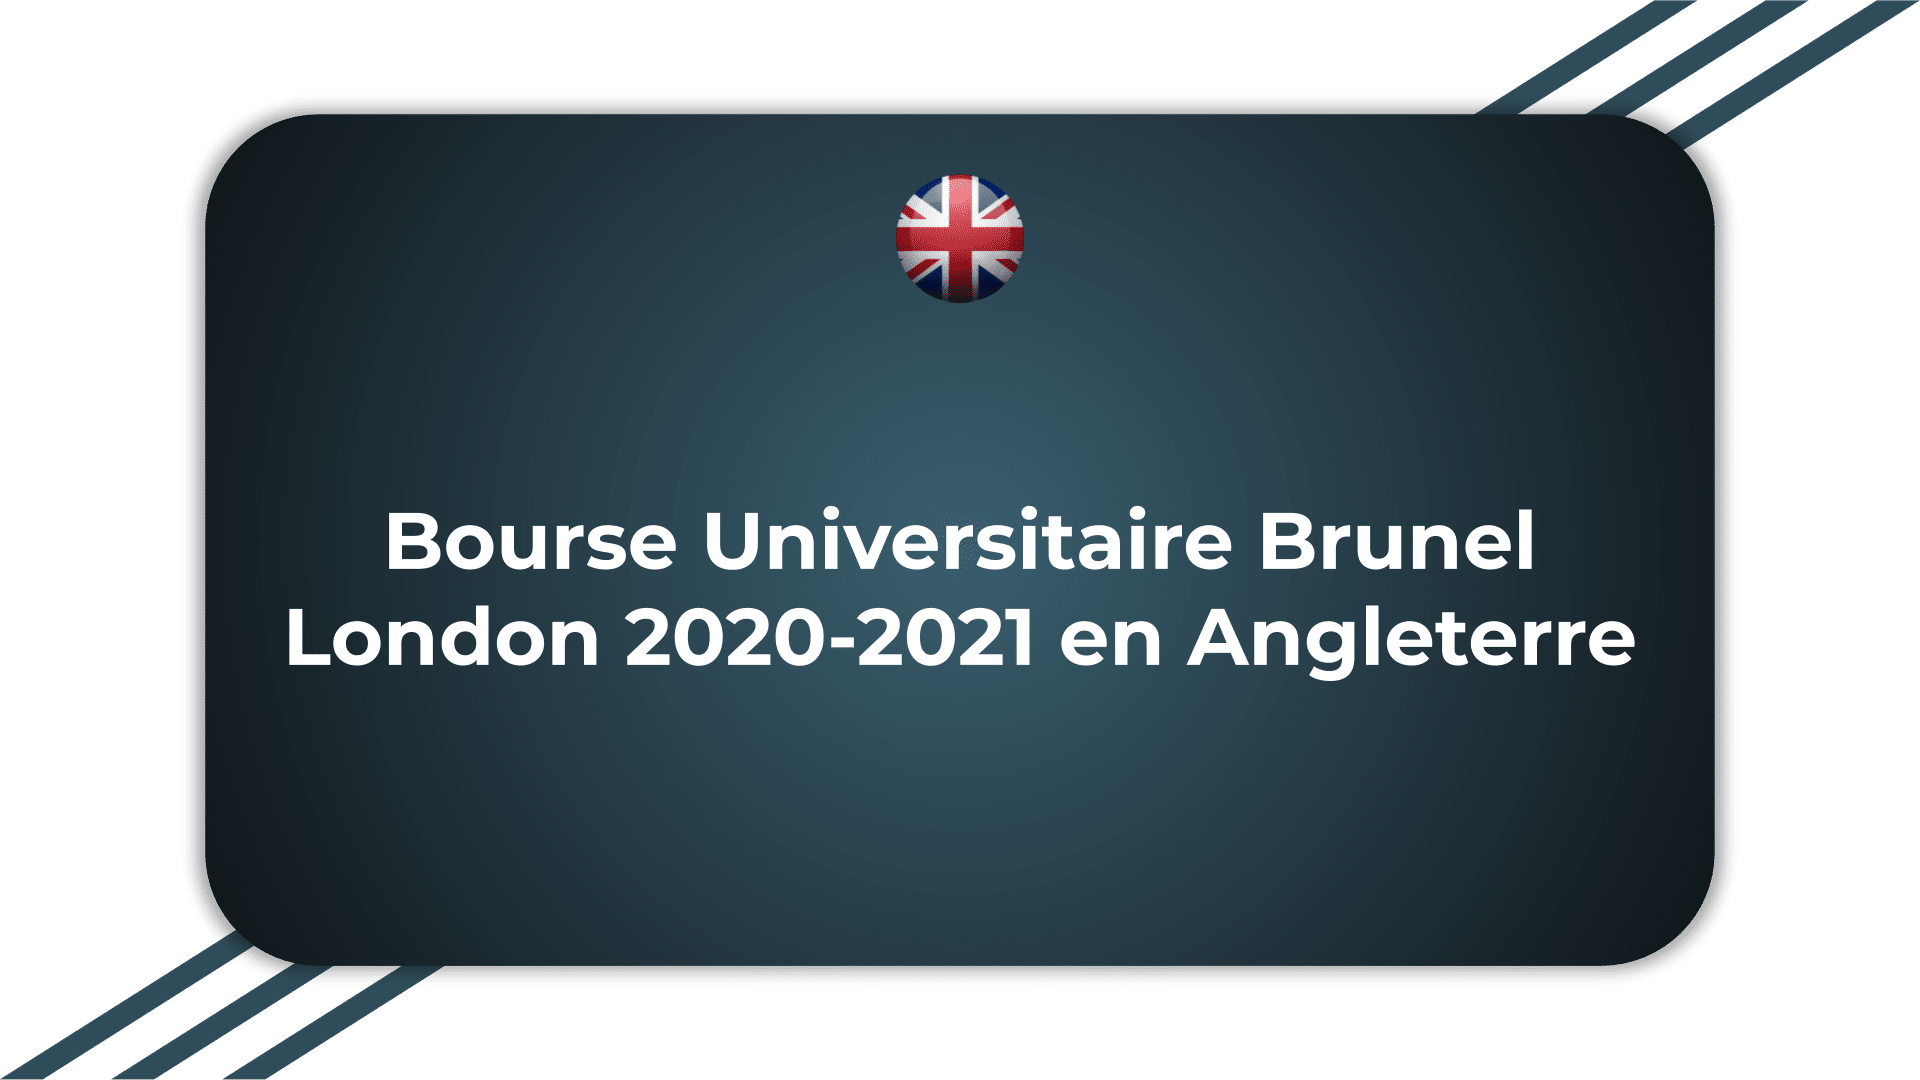 Bourse Universitaire Brunel London